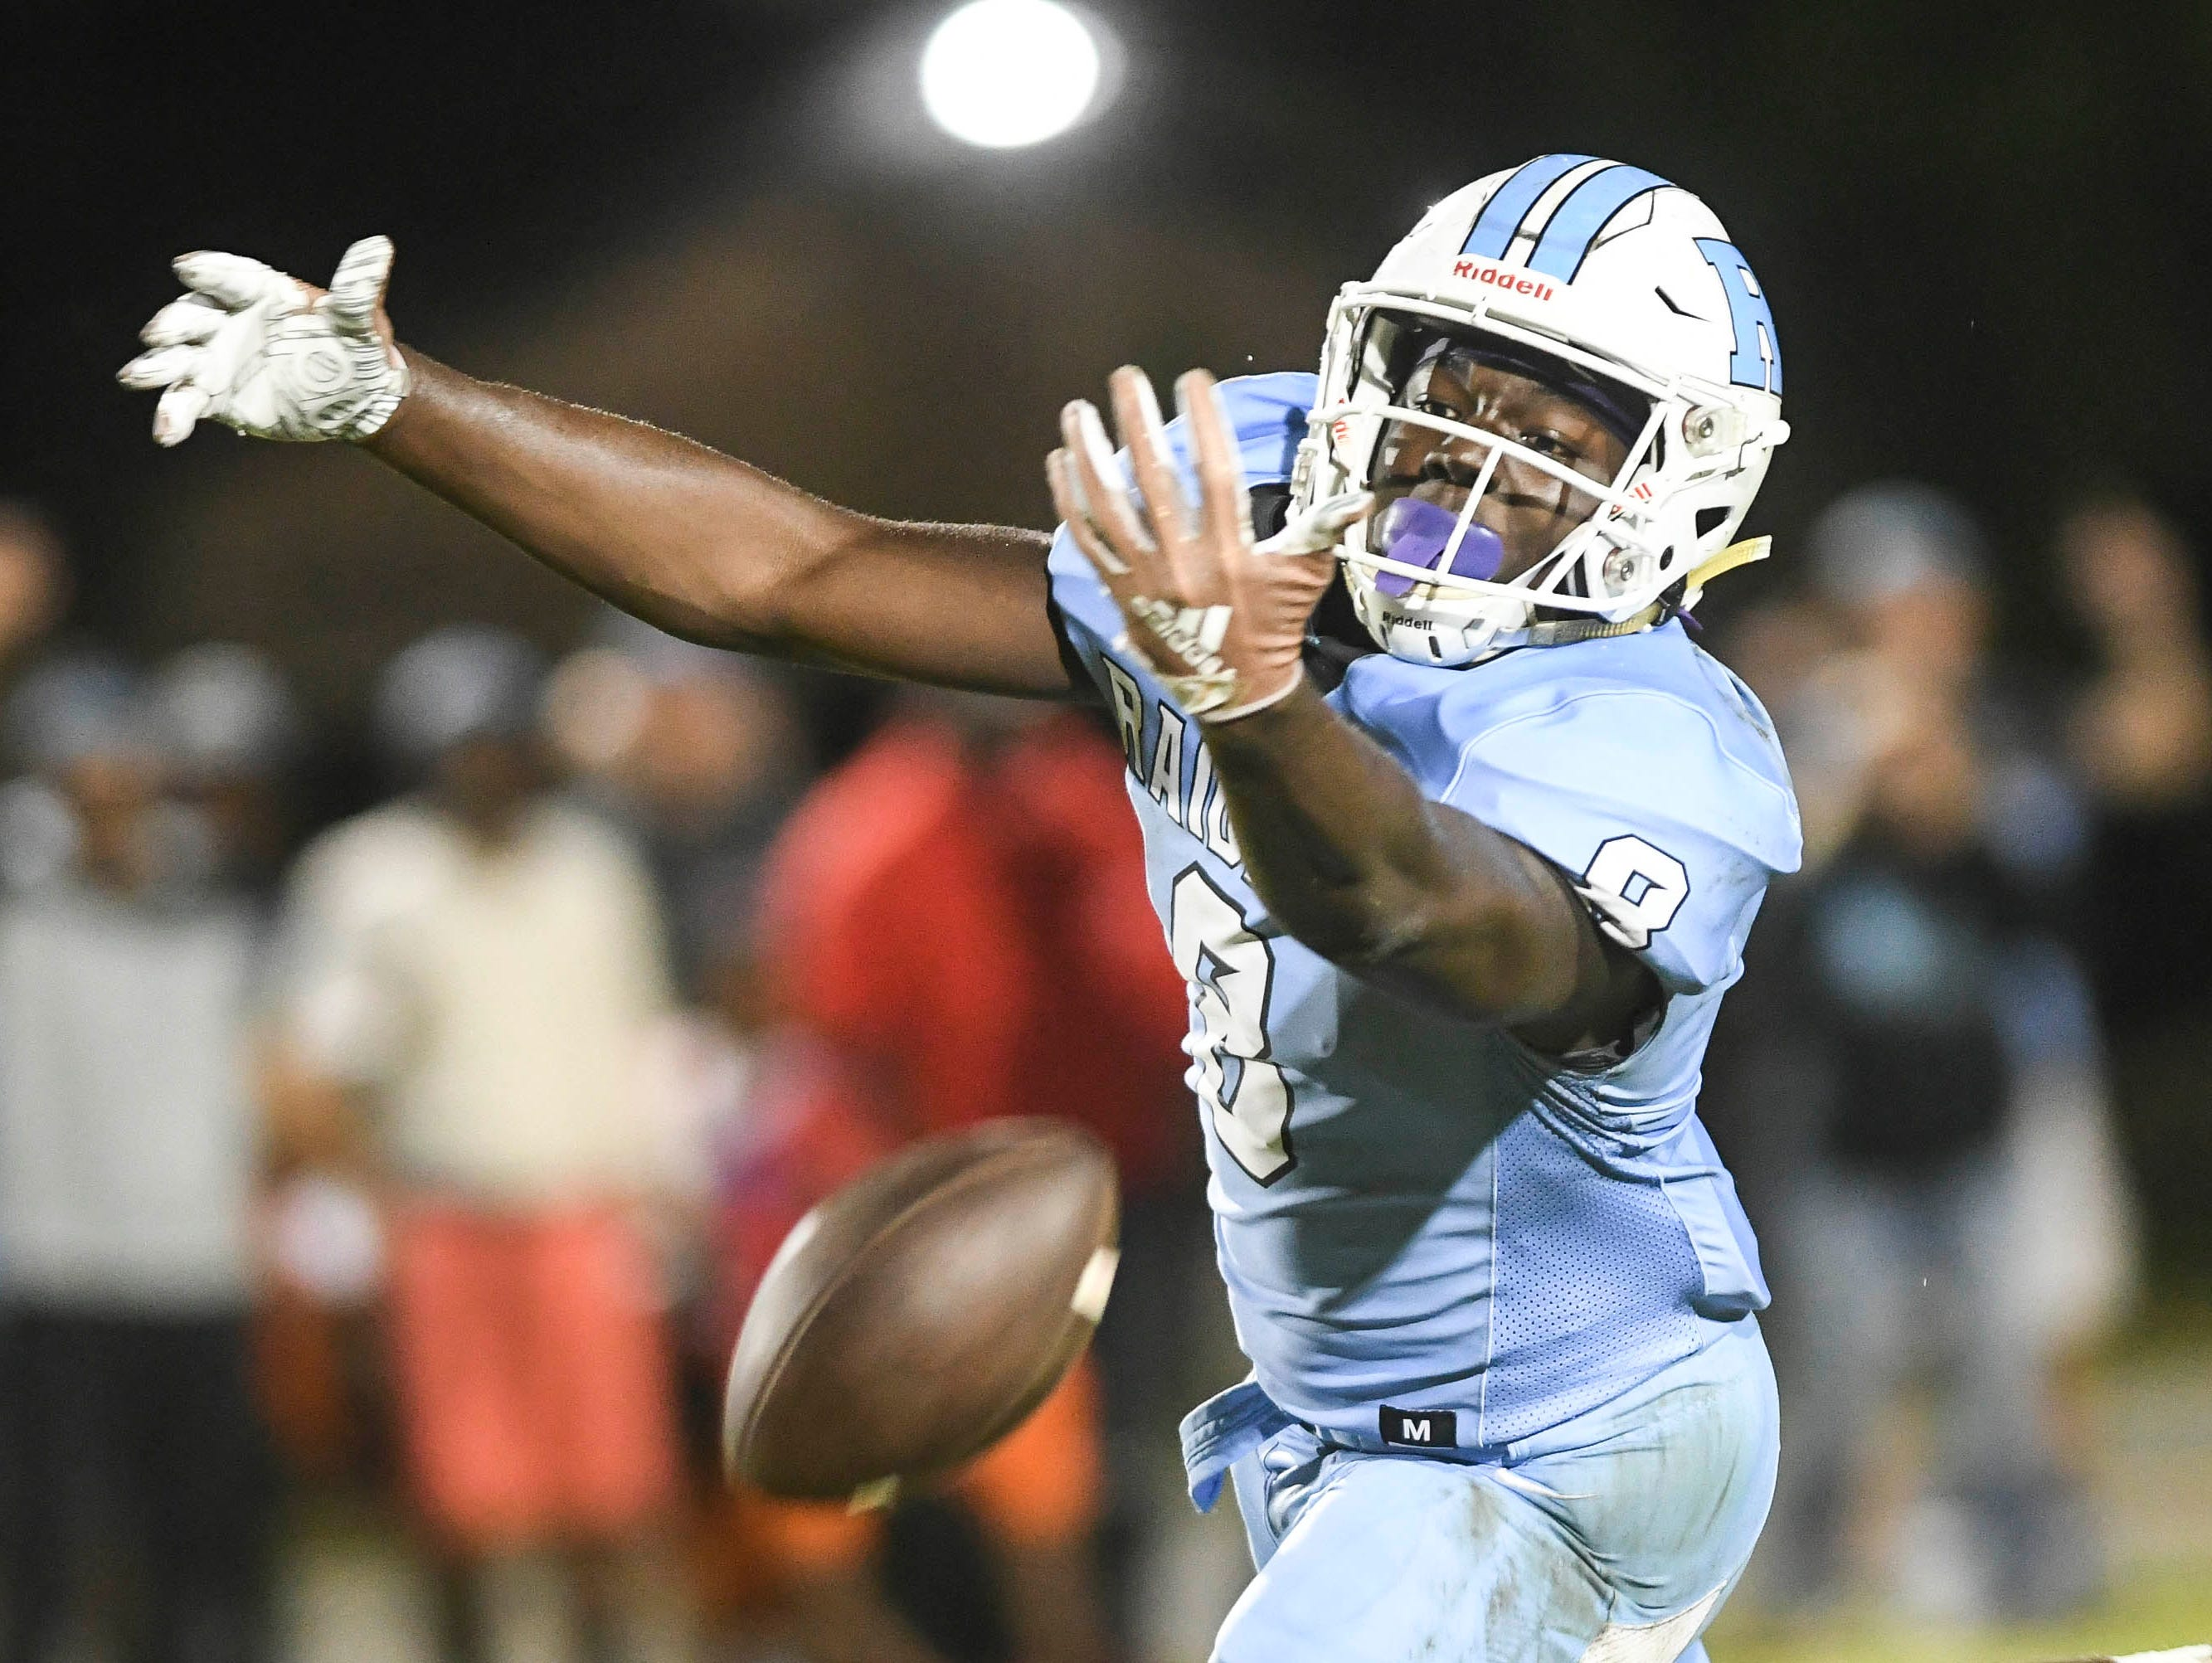 Rockledge's OC Brothers reaches out but can't quite bring in this pass during Friday's game against Cocoa.